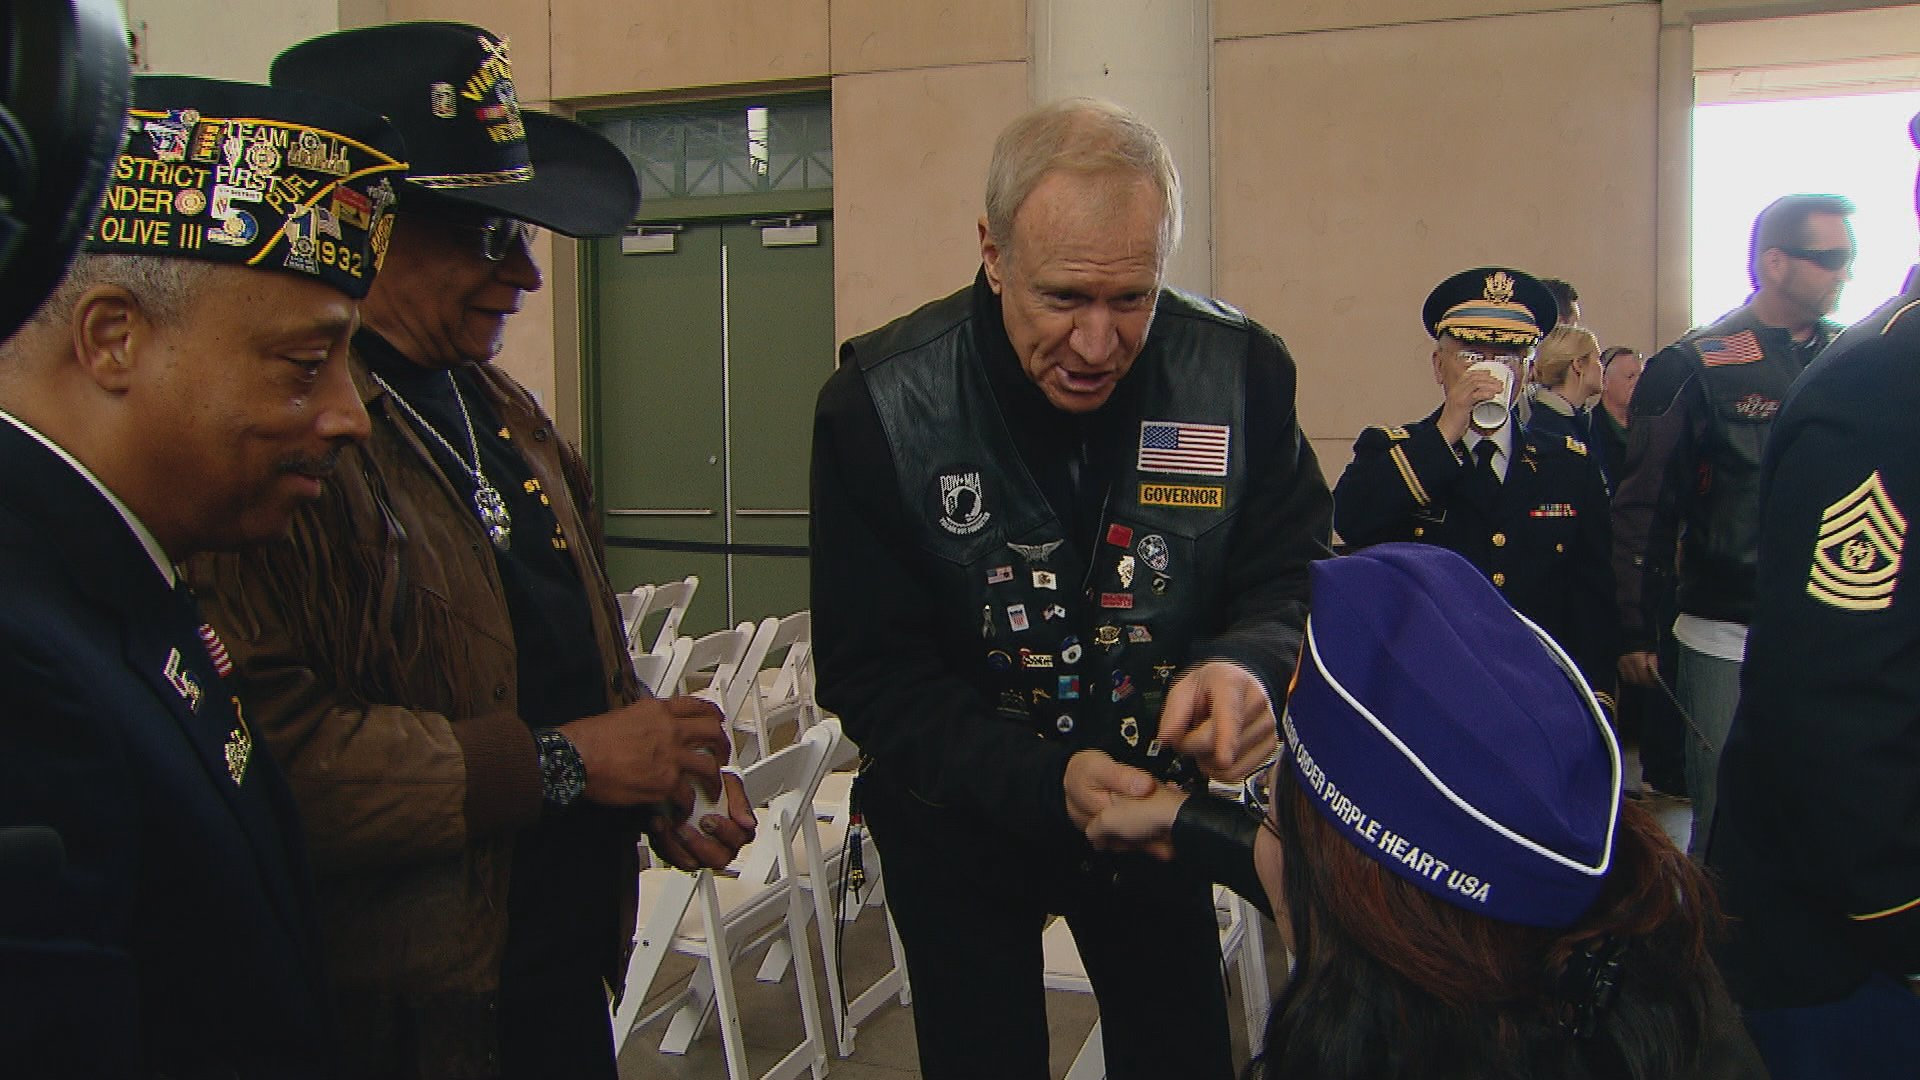 Gov. Bruce Rauner greets a veteran at Wednesday's Veteran's Day ceremony at Soldier Field.